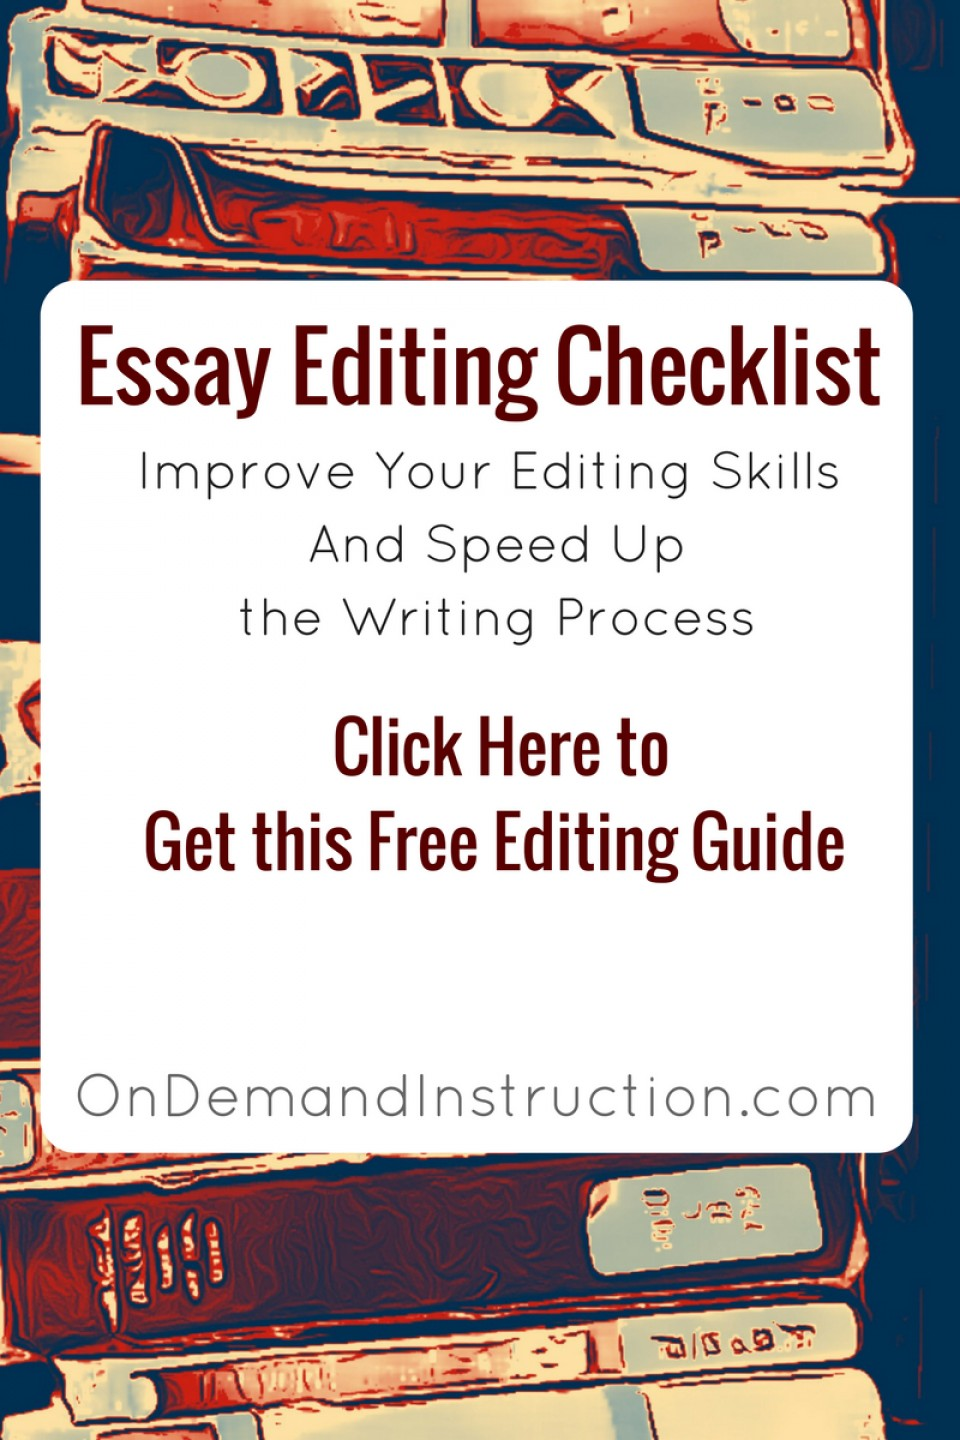 015 Essay Editor Example Marvelous Paper Jobs Reddit Freelance 960